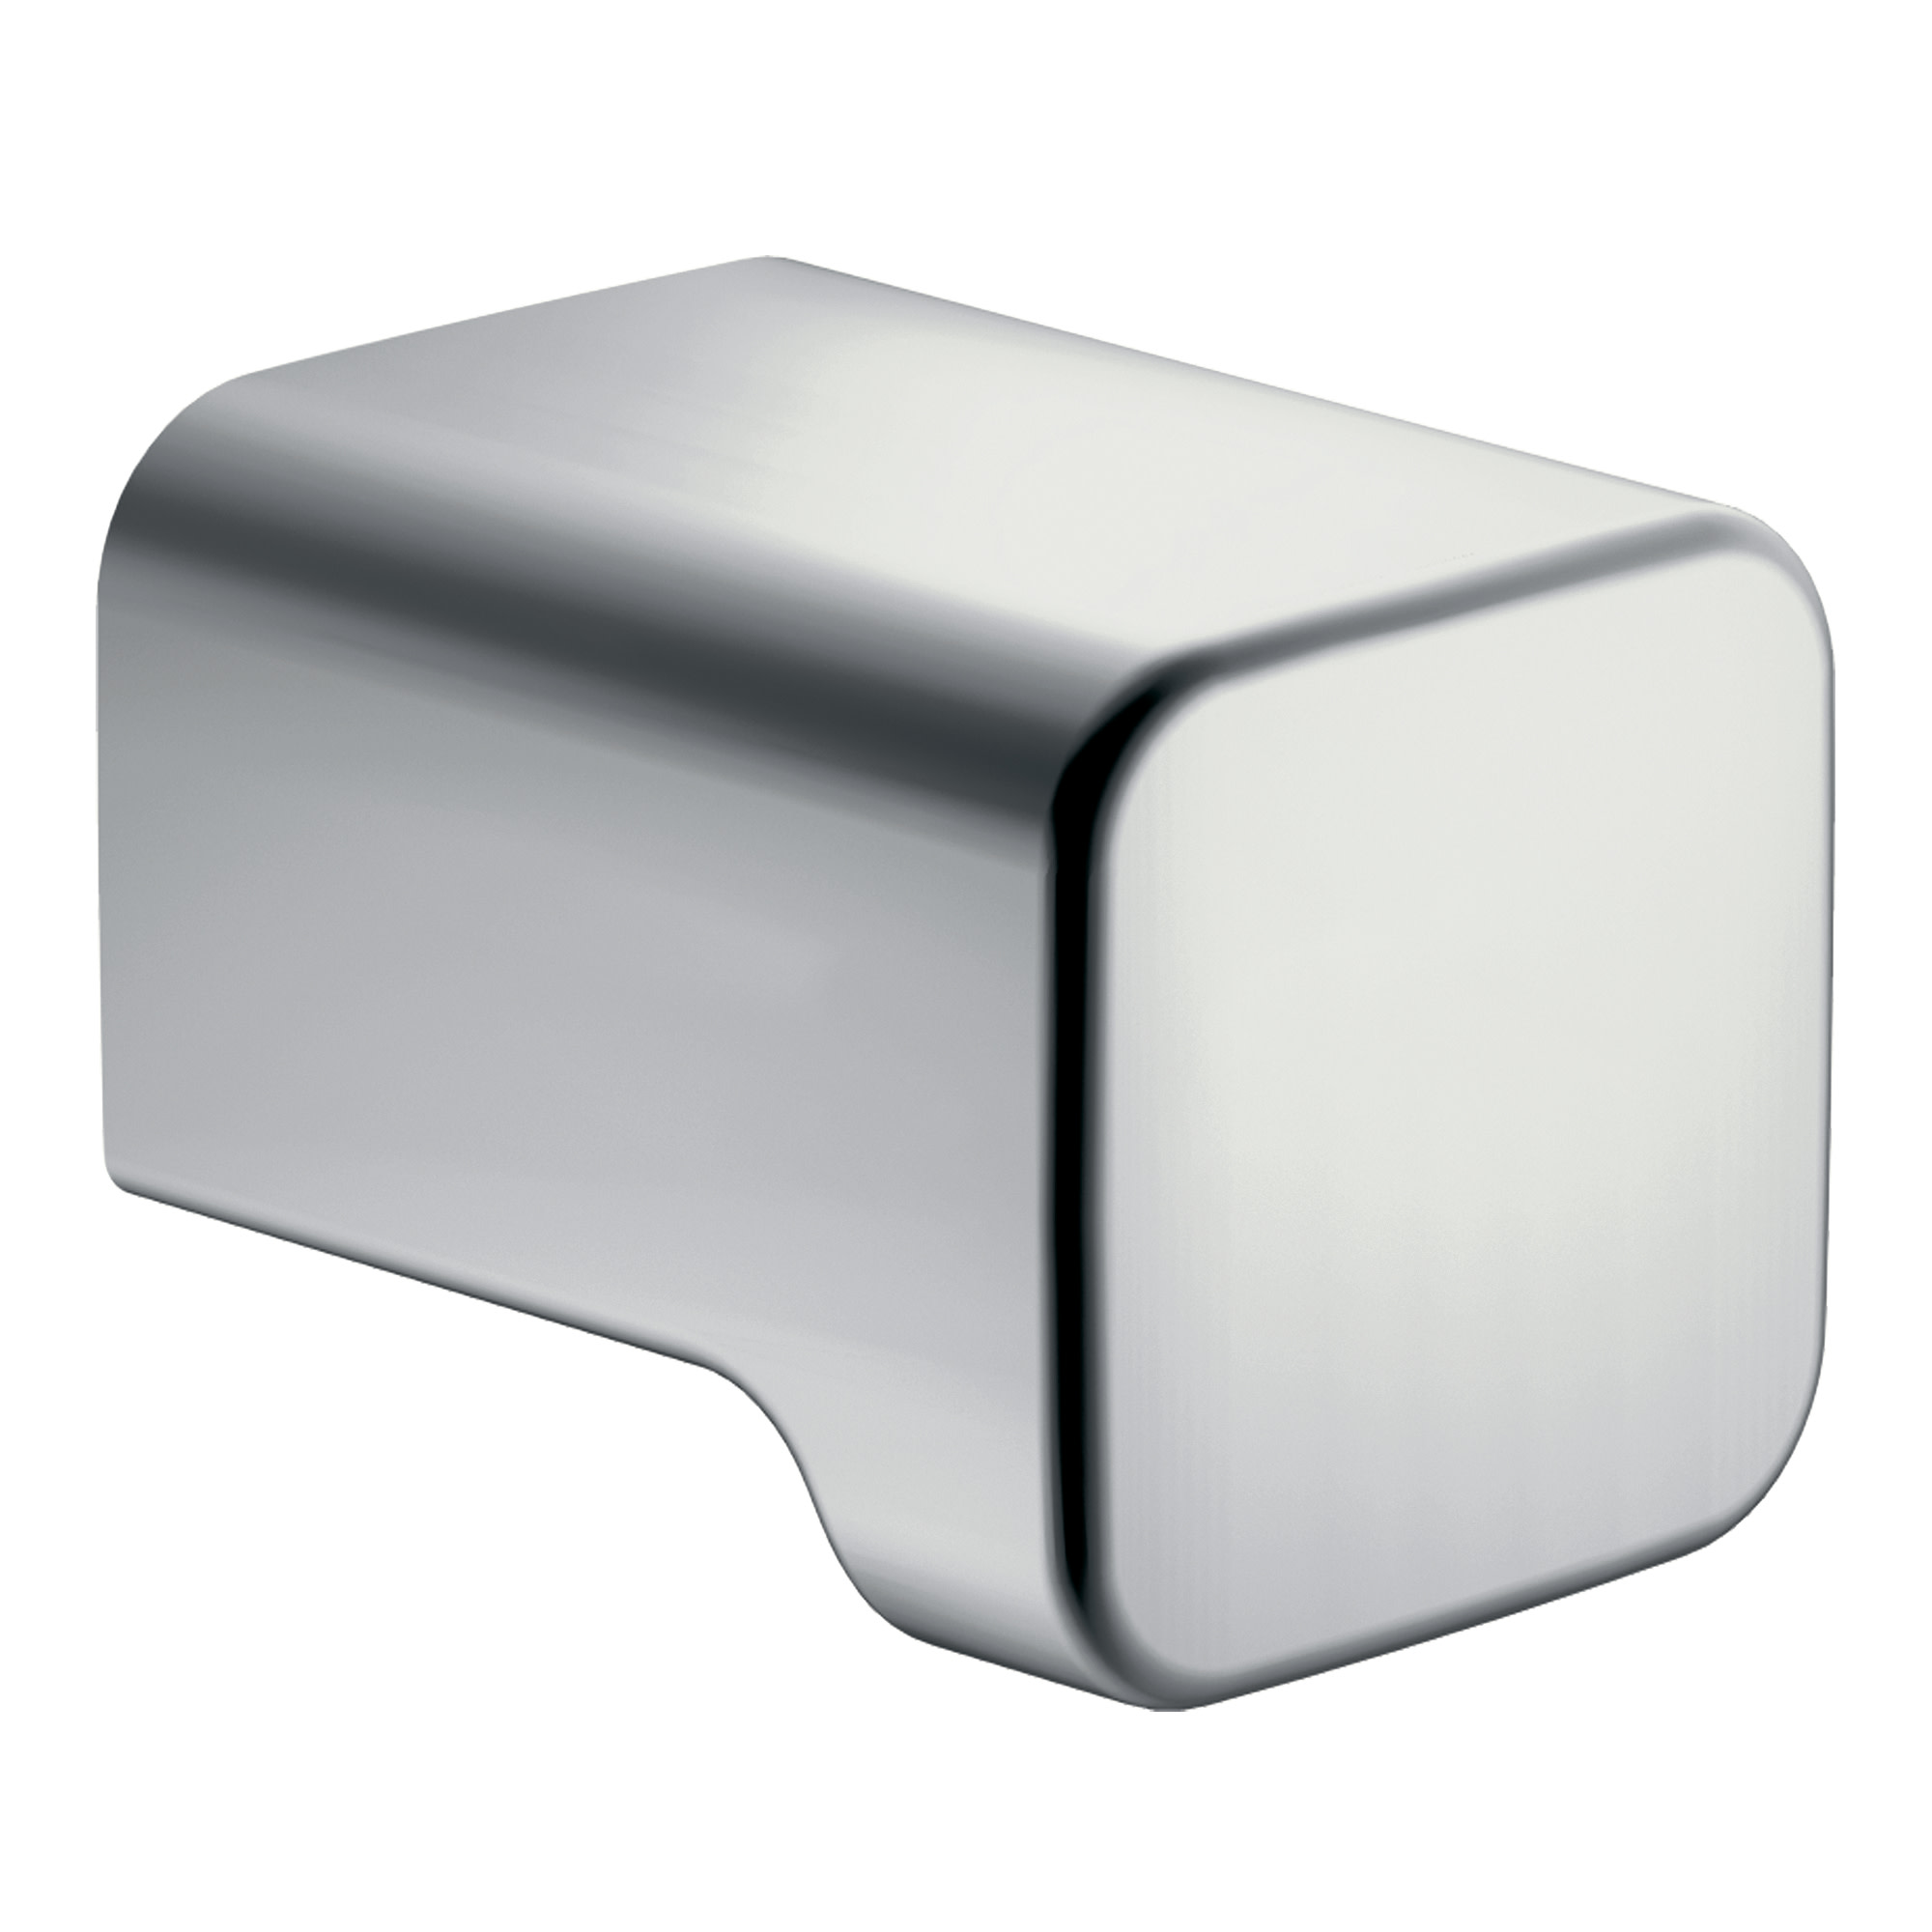 90 Degree Chrome drawer knob MOEN-YB8805CH